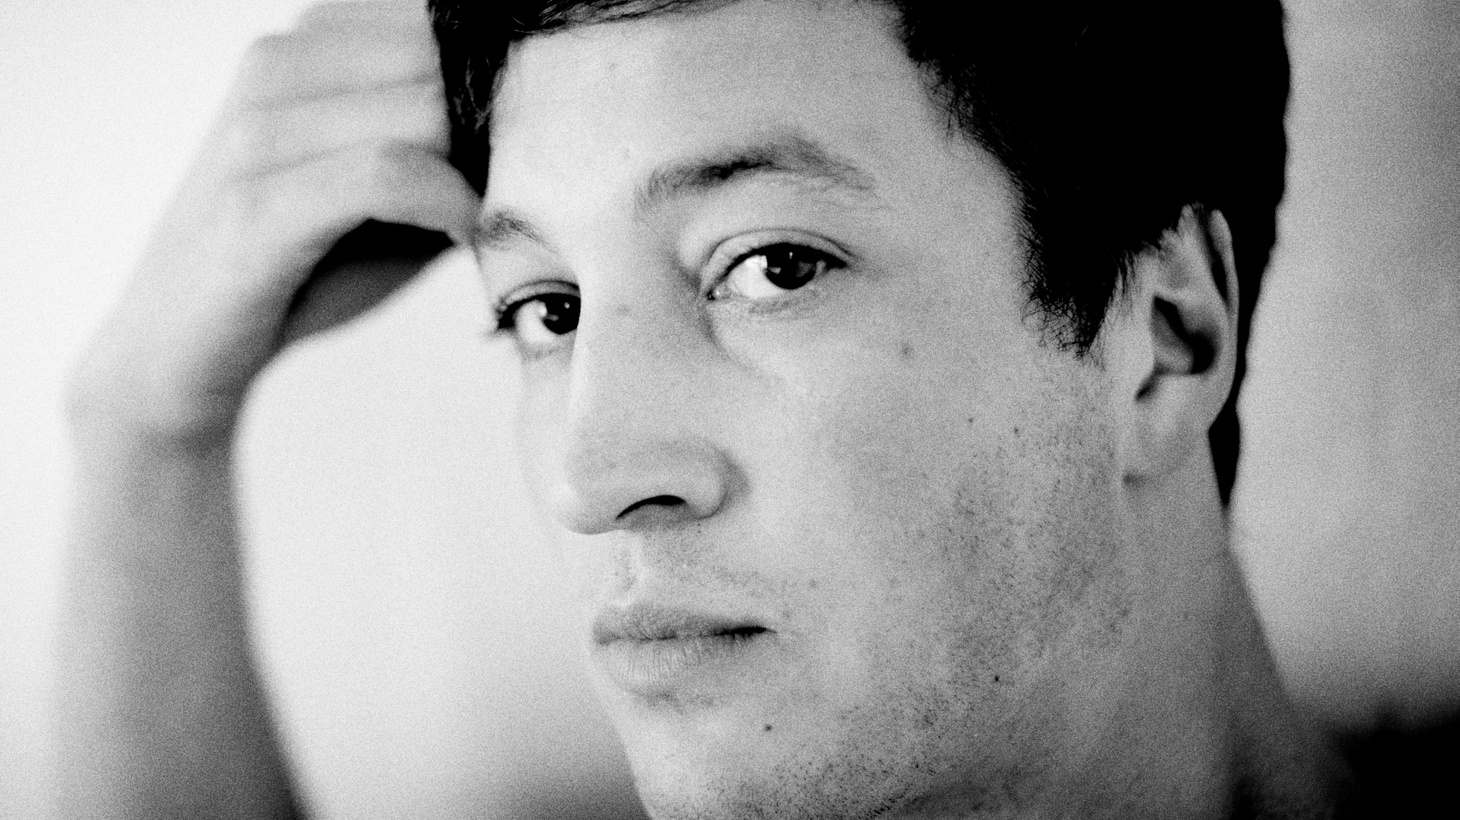 """Marlon Williams chronicles the arc of relationships on his new albumMake Way For Love. Today's track - """"What's Chasing You"""" – is no exception and recalls Roy Orbison. If you're at SXSW, check him out when he appears at KCRW's Day Showcase (3/14)."""